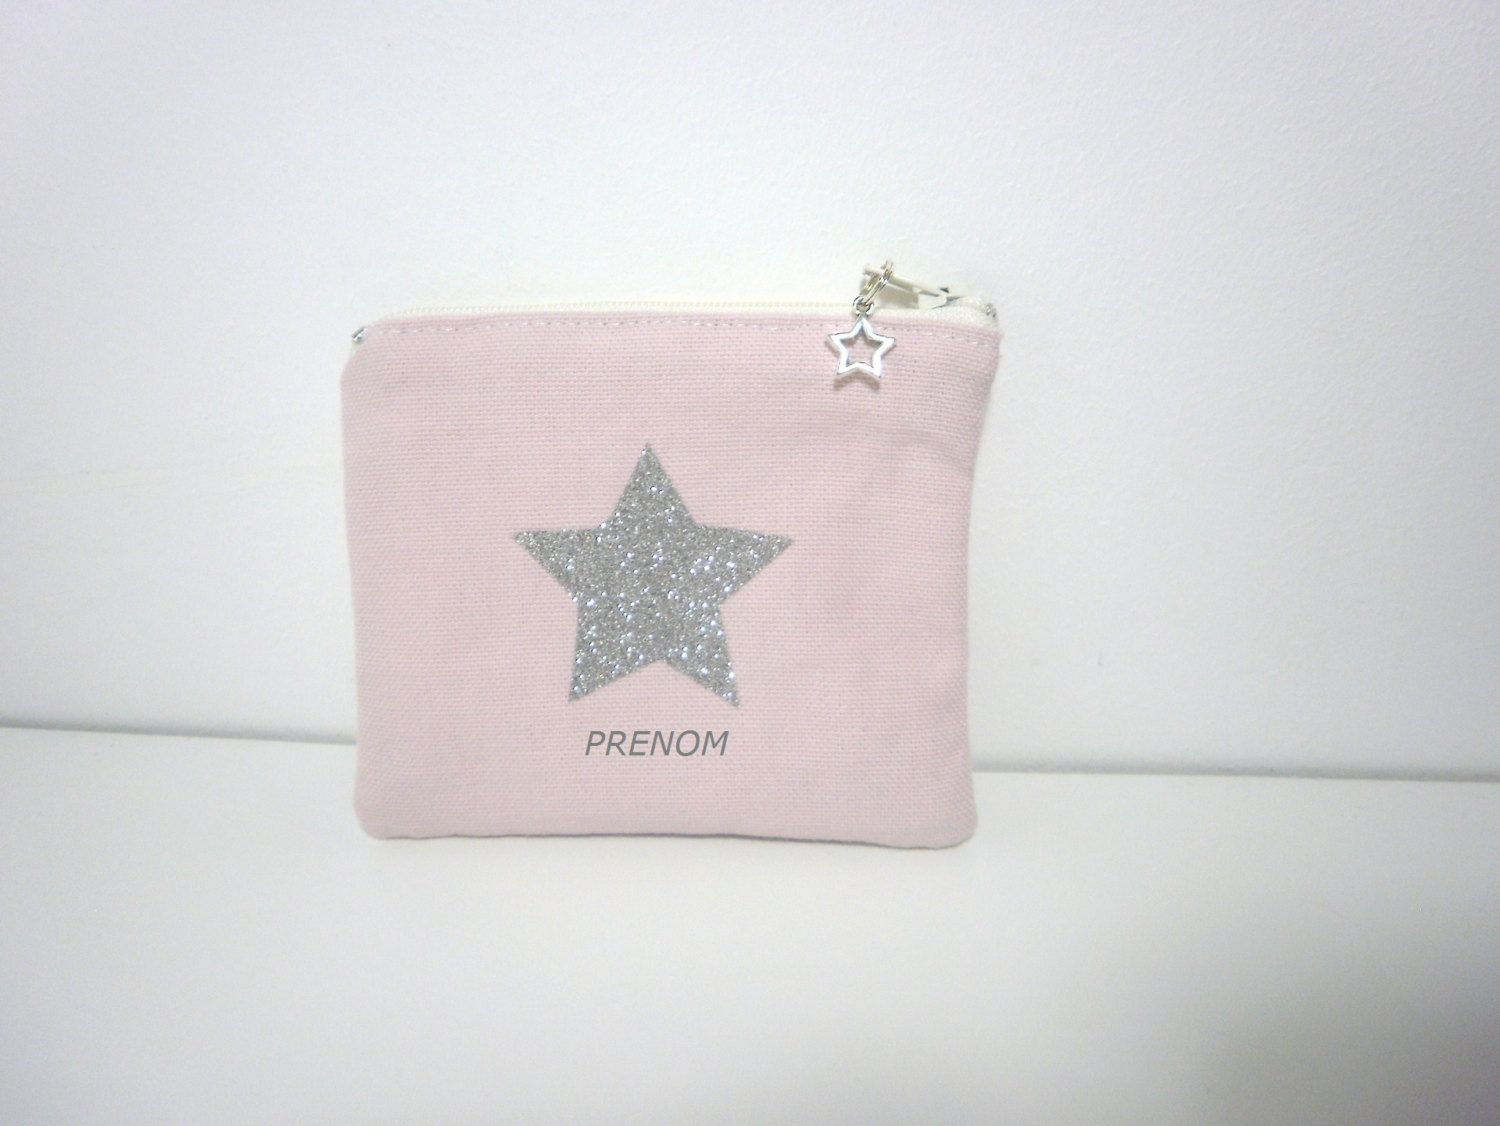 Small Wallet First Child Girl Light Pink Sequin Embroidery Fabric - Petit porte monnaie femme